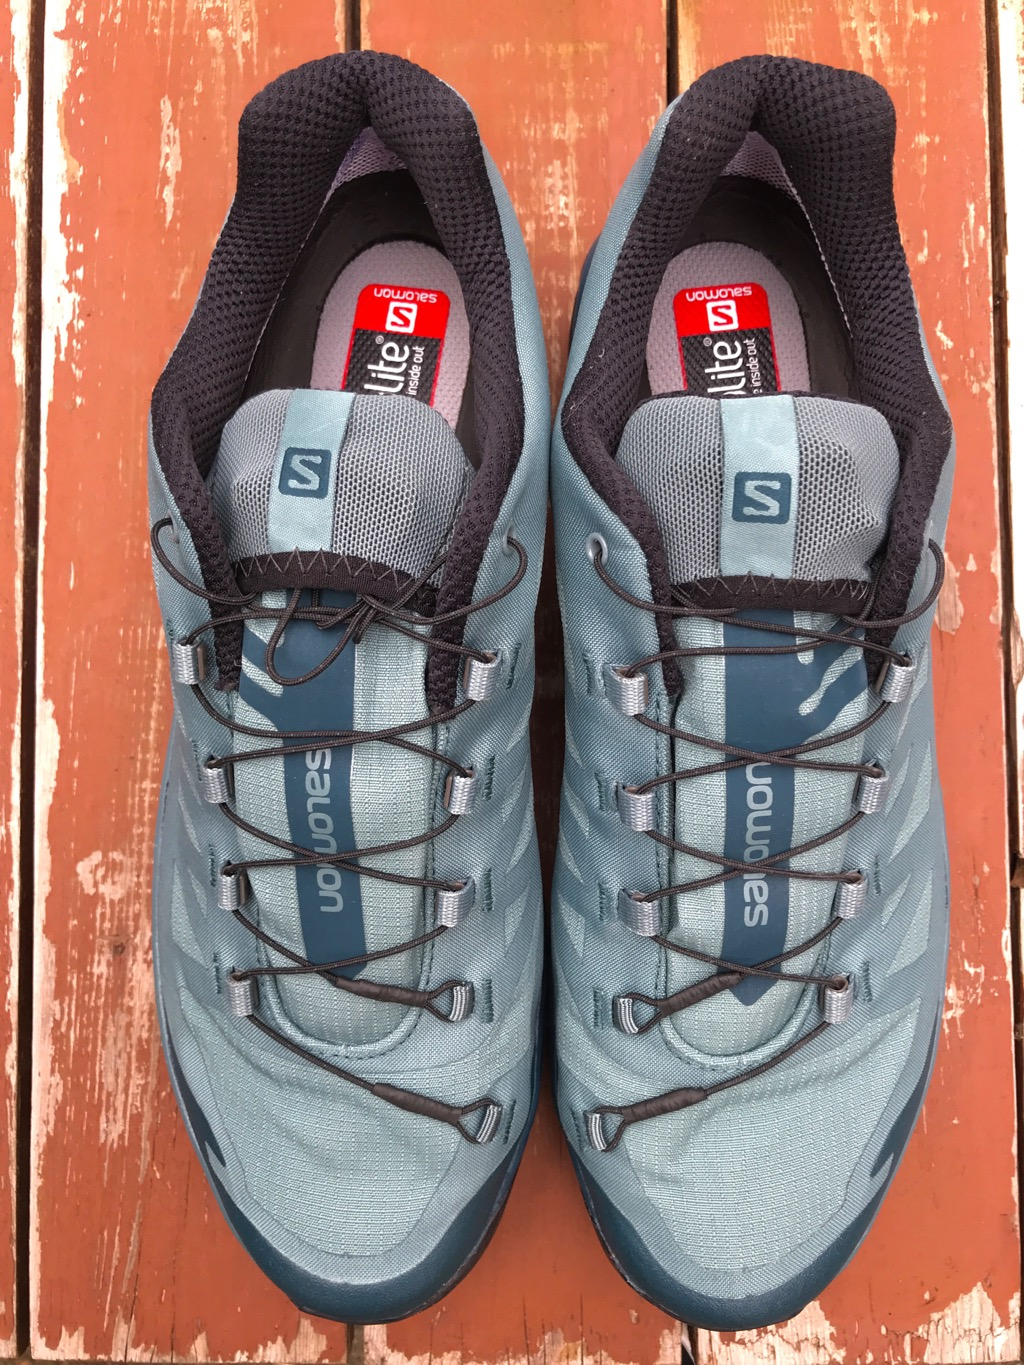 4db7f55f074c6 Final Thoughts on the Salomon Outpath GTX Hiking Shoe